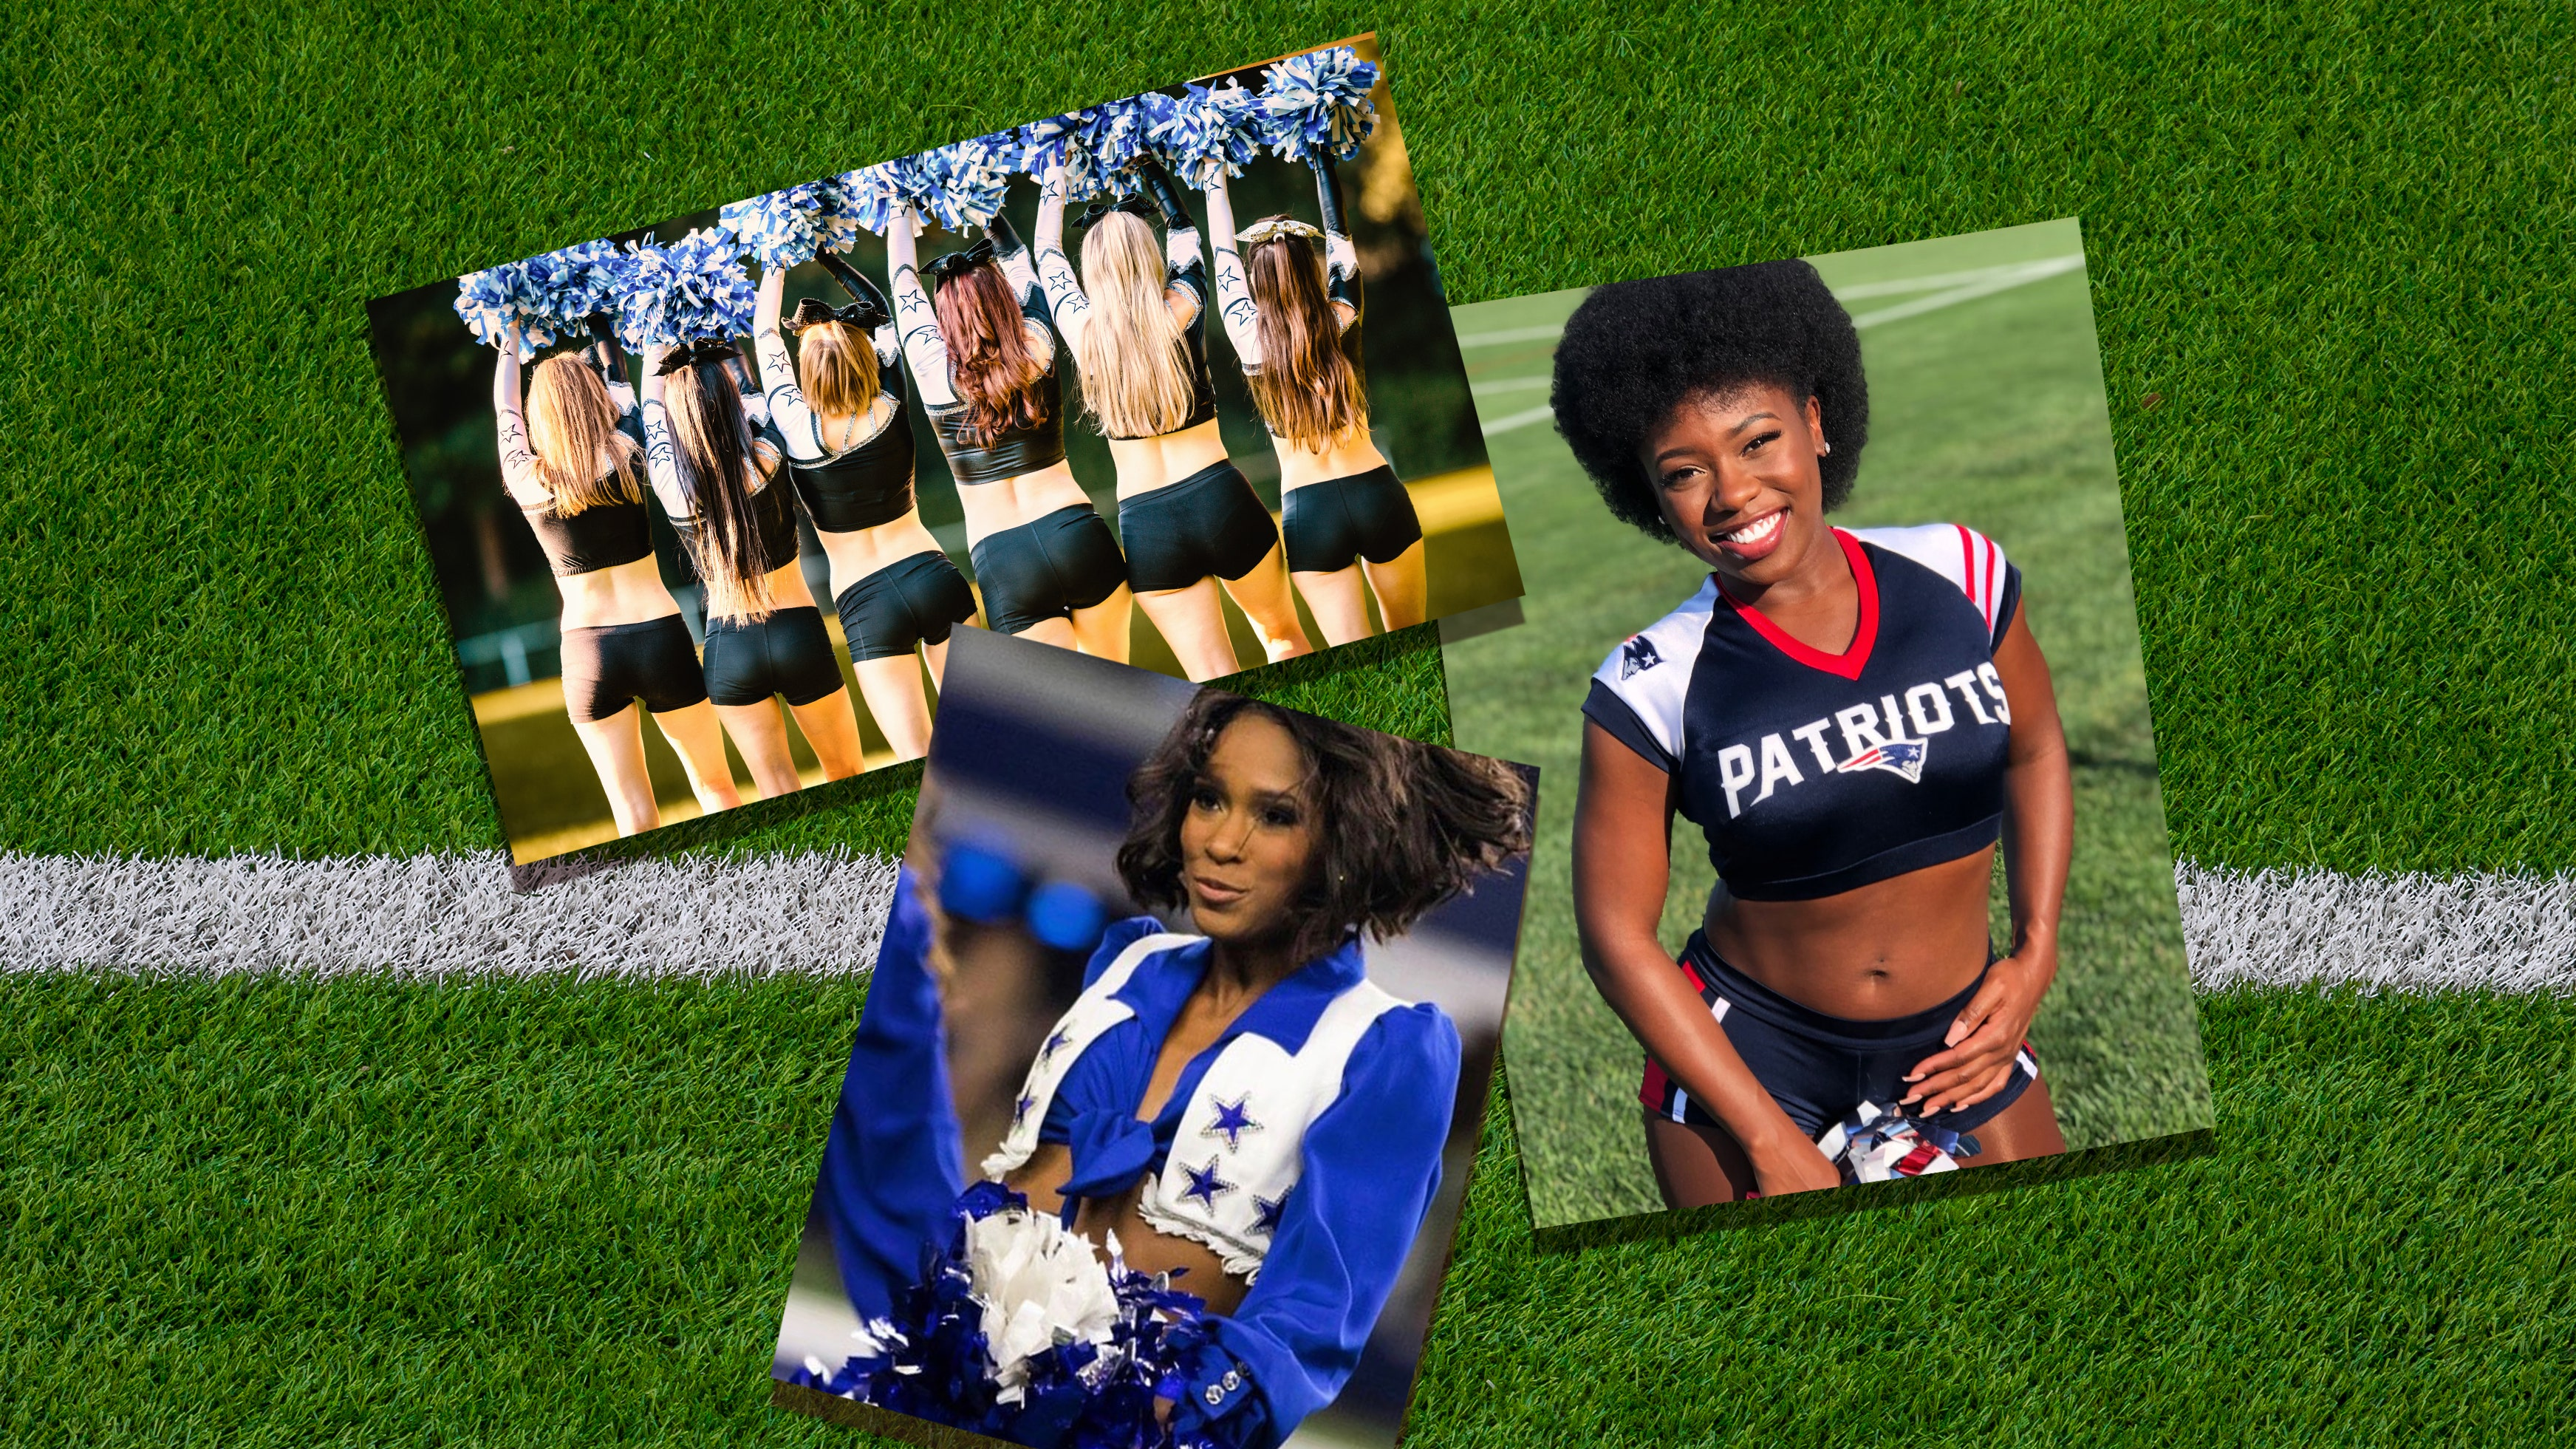 Black Cheerleaders Are Calling for Change. Will the NFL Listen?